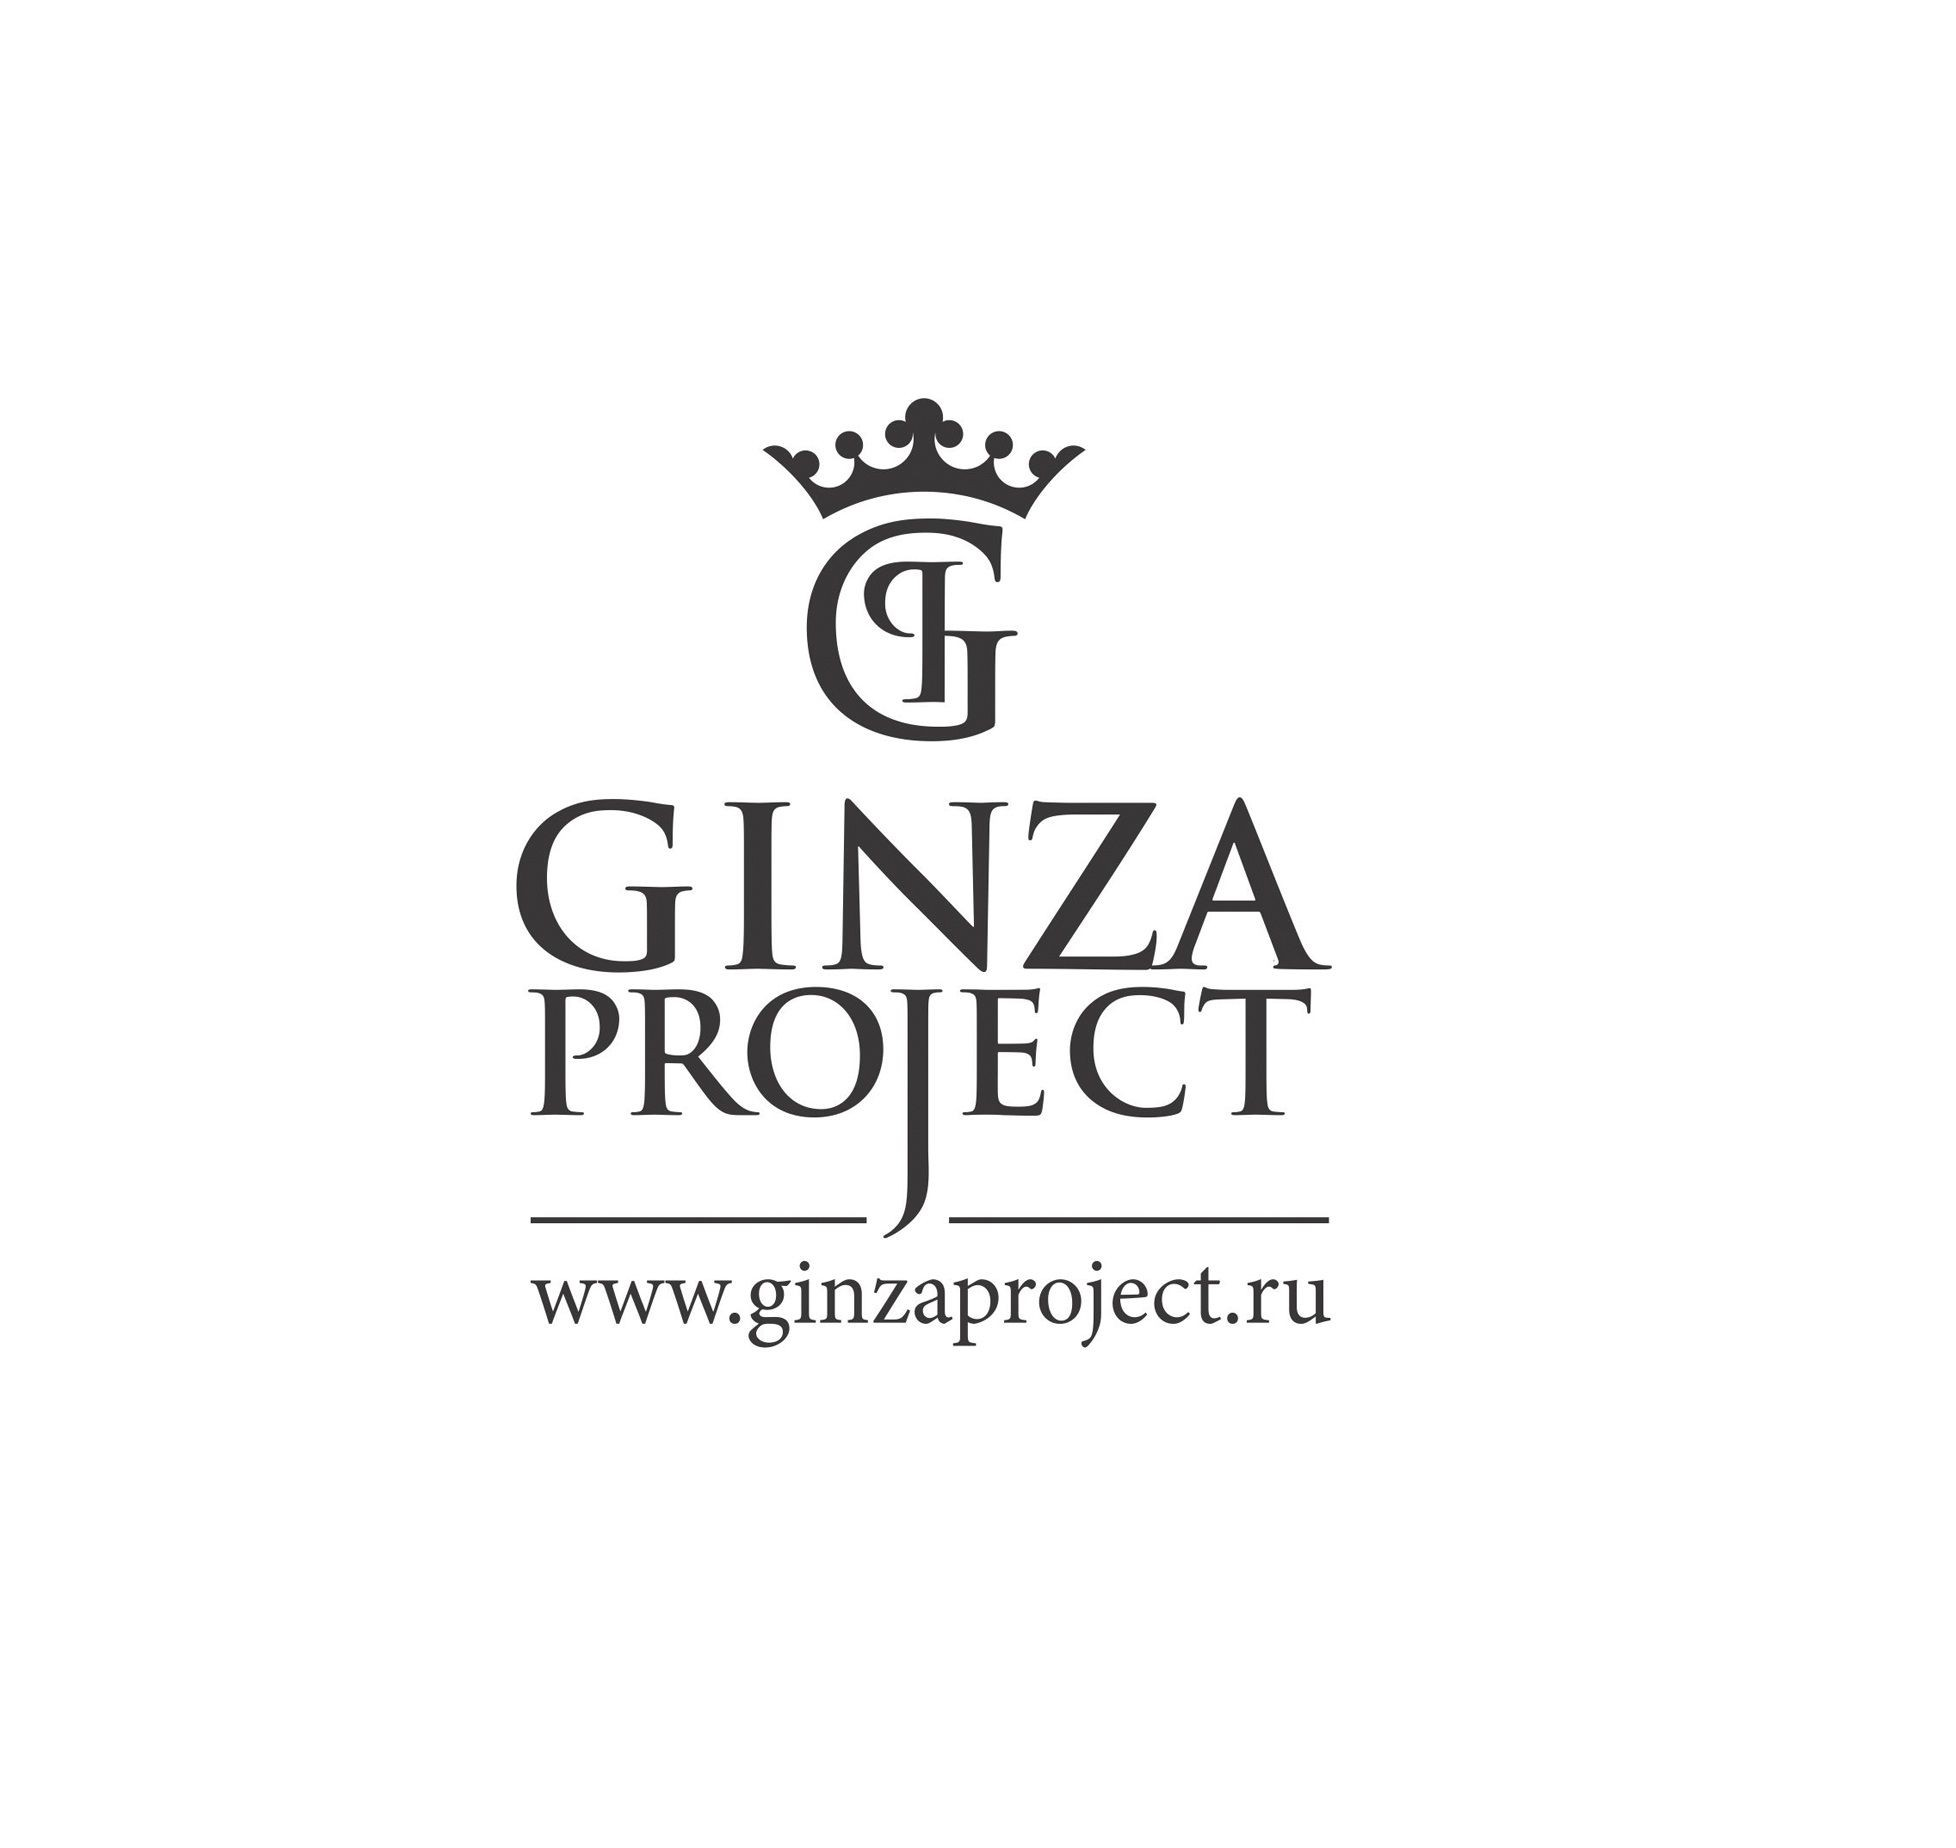 GinzaProject